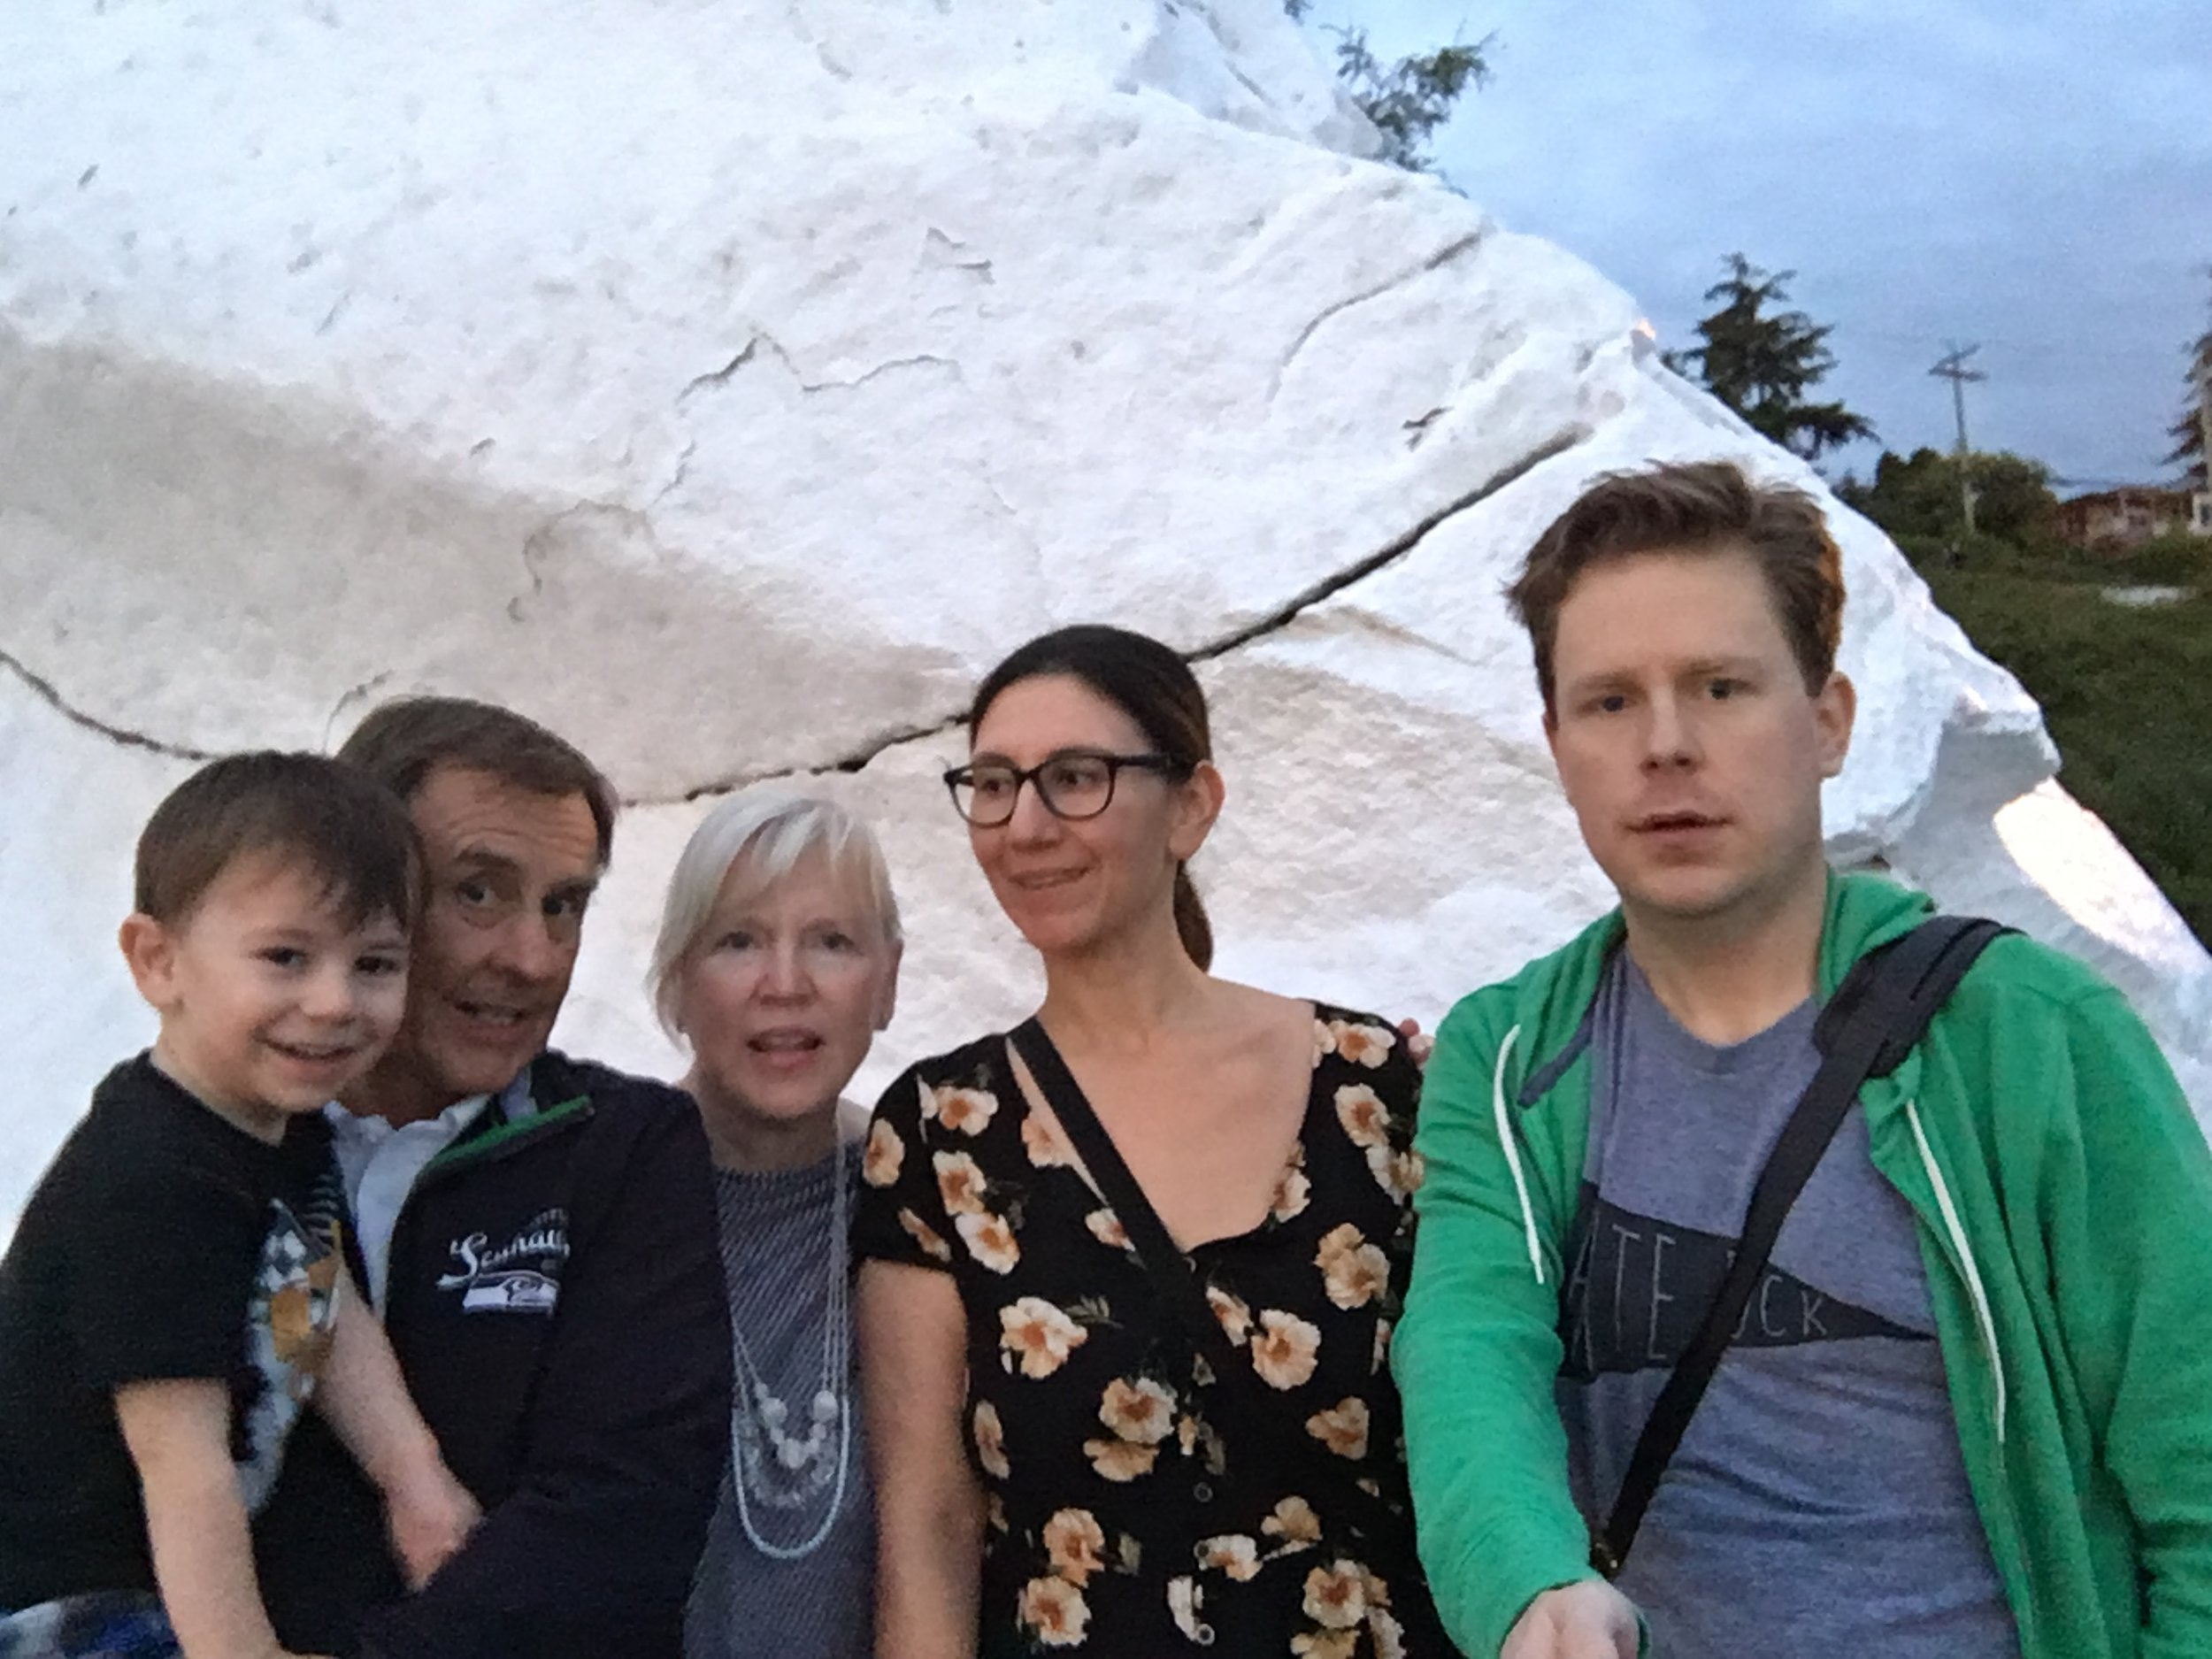 My family at the famous white rock of White Rock a few years ago.